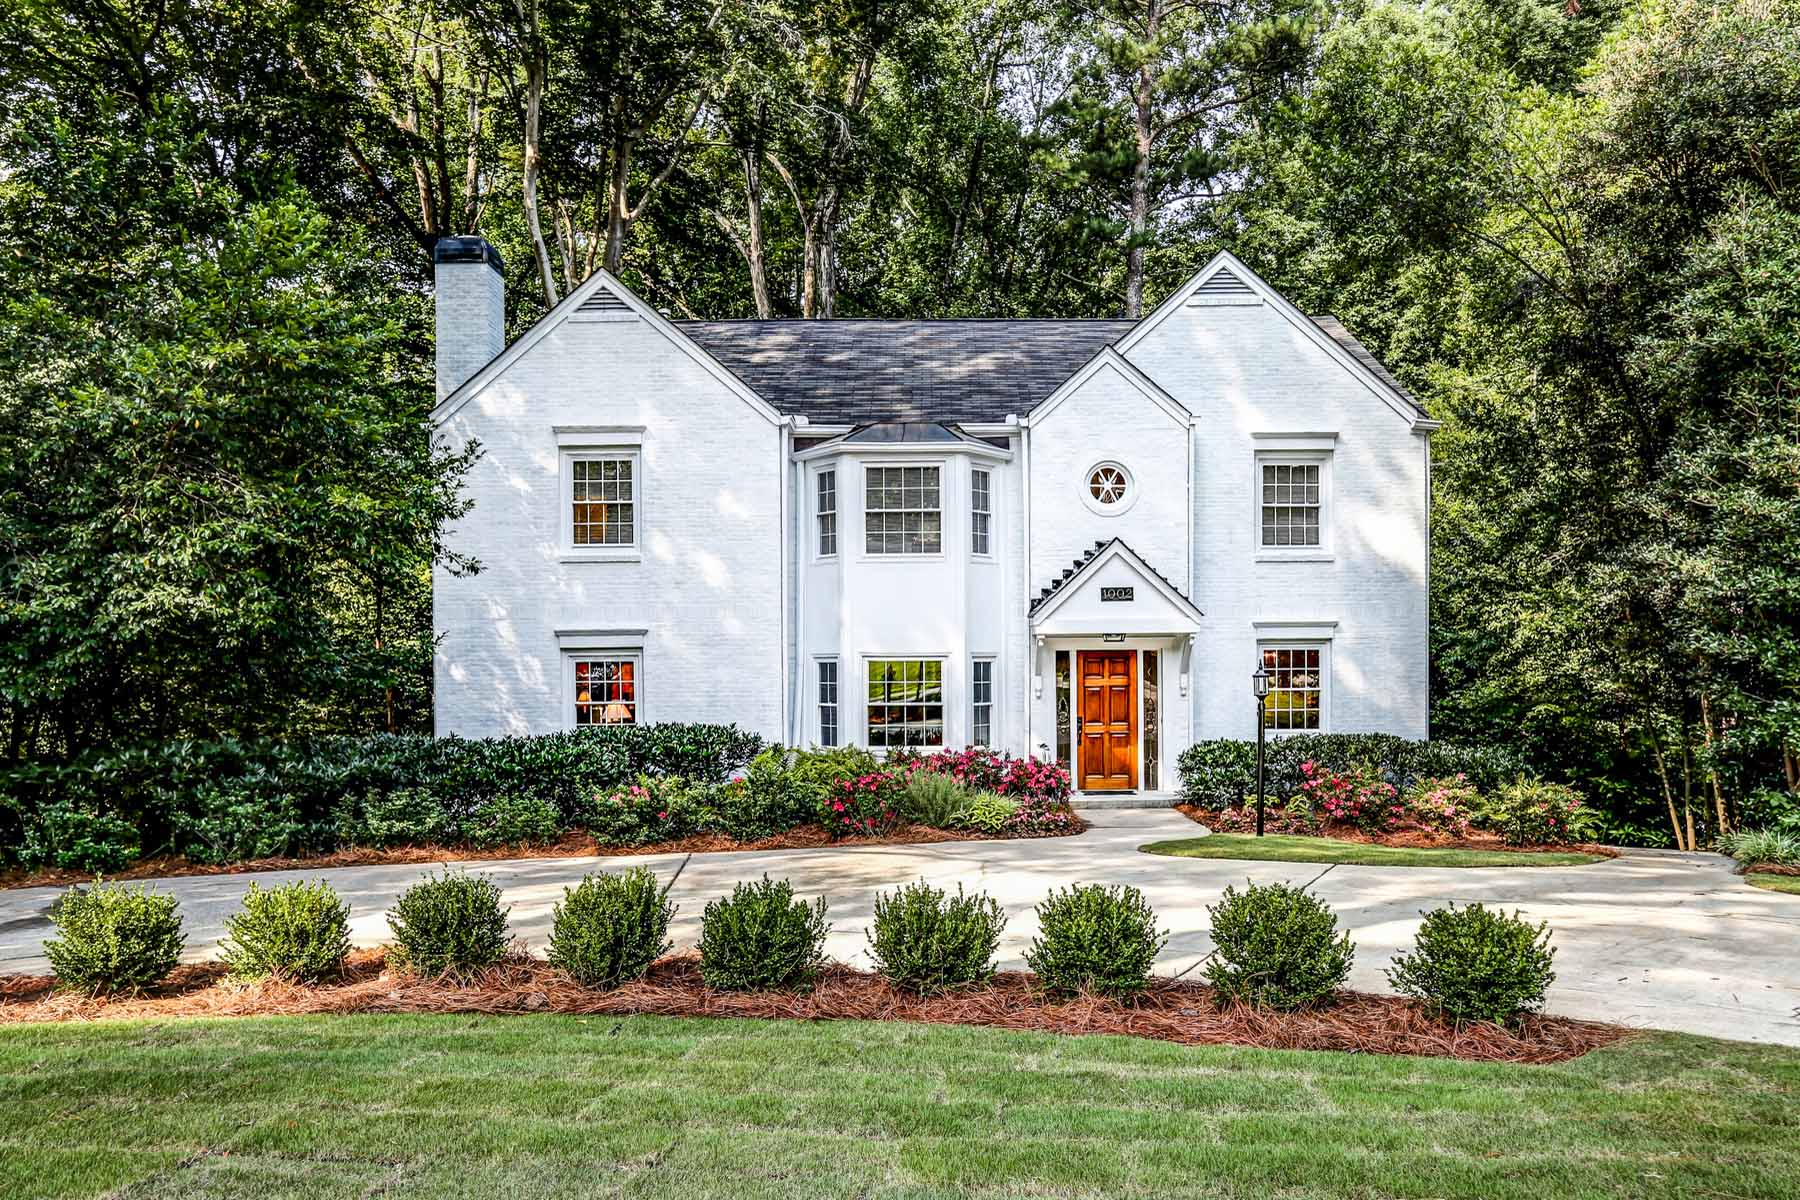 Single Family Home for Sale at Maximum home and estate lot for realistic price 1002 Clifton Road NE Druid Hills, Atlanta, Georgia, 30307 United States